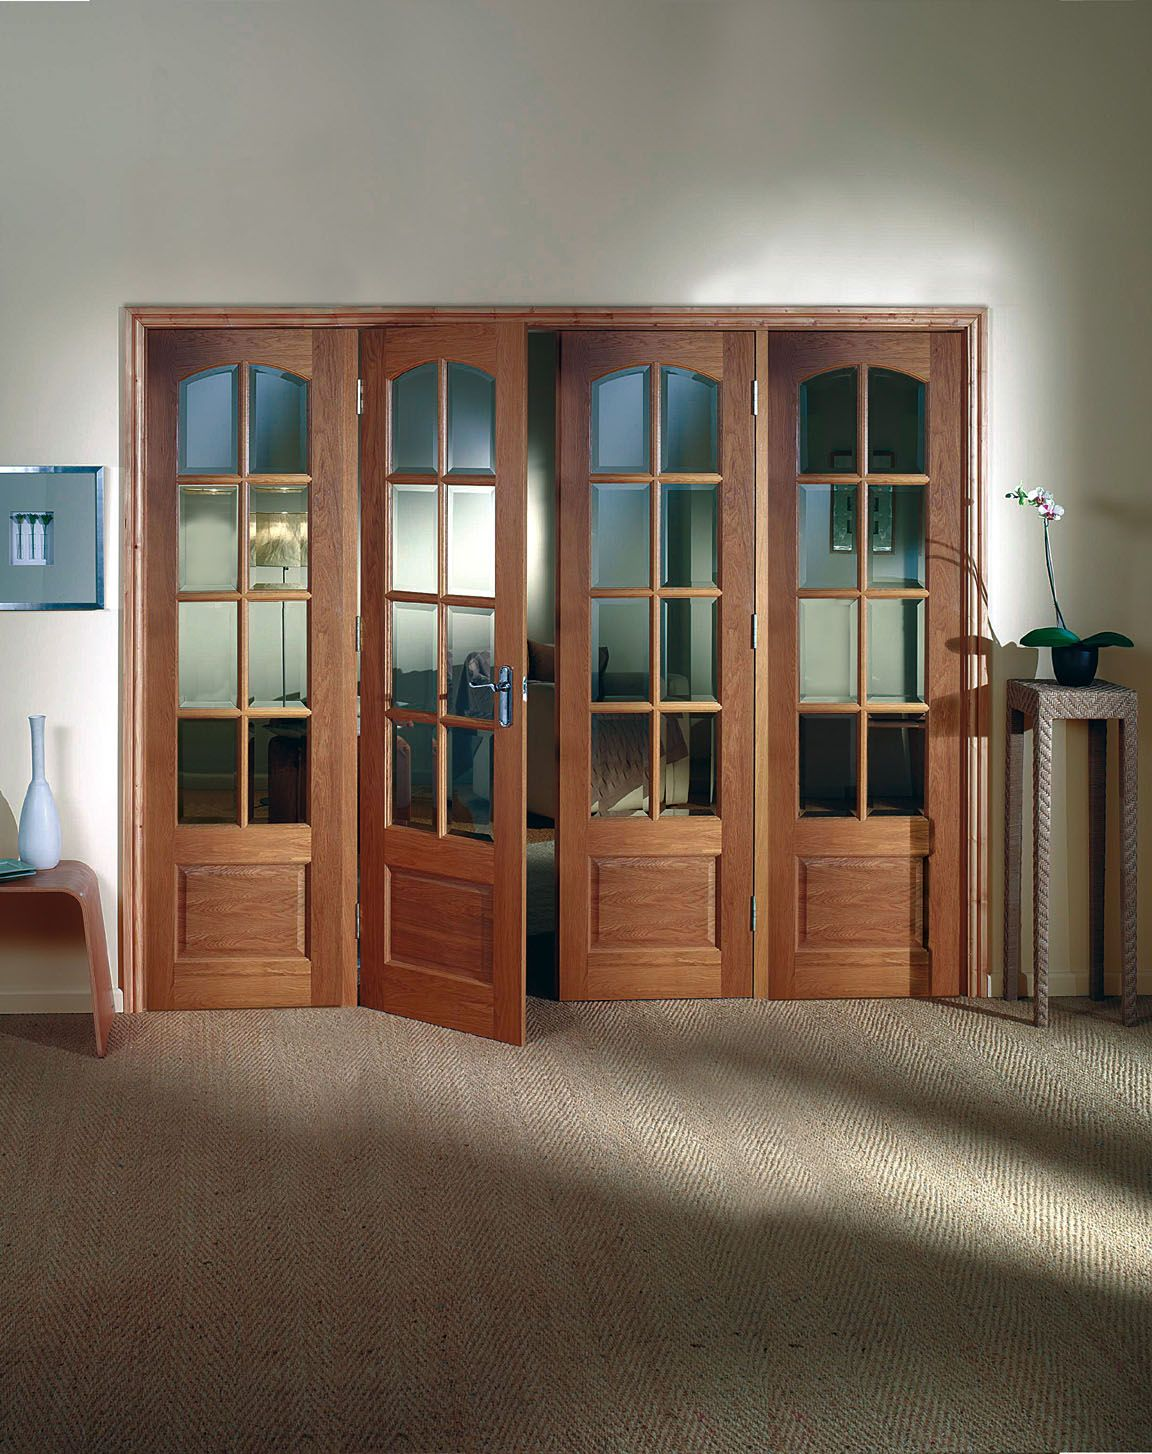 Norbury ph8 oak french doors glazed french doors internal french norbury ph8 oak french doors glazed french doors internal french doors planetlyrics Choice Image